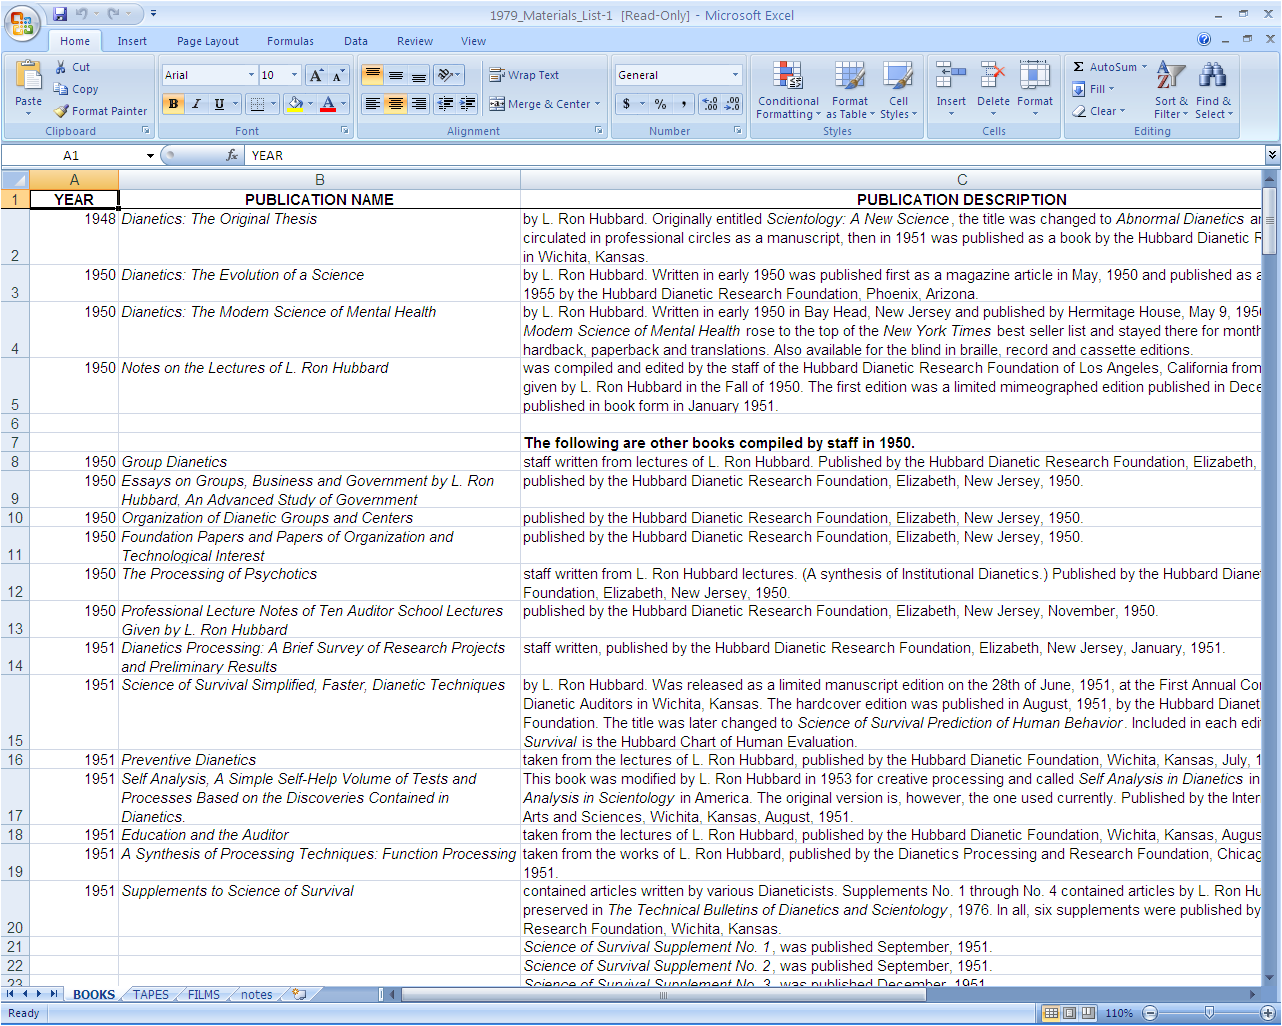 Spreadsheet format listing the chronological publication of the books, lectures and videos of Scientology.